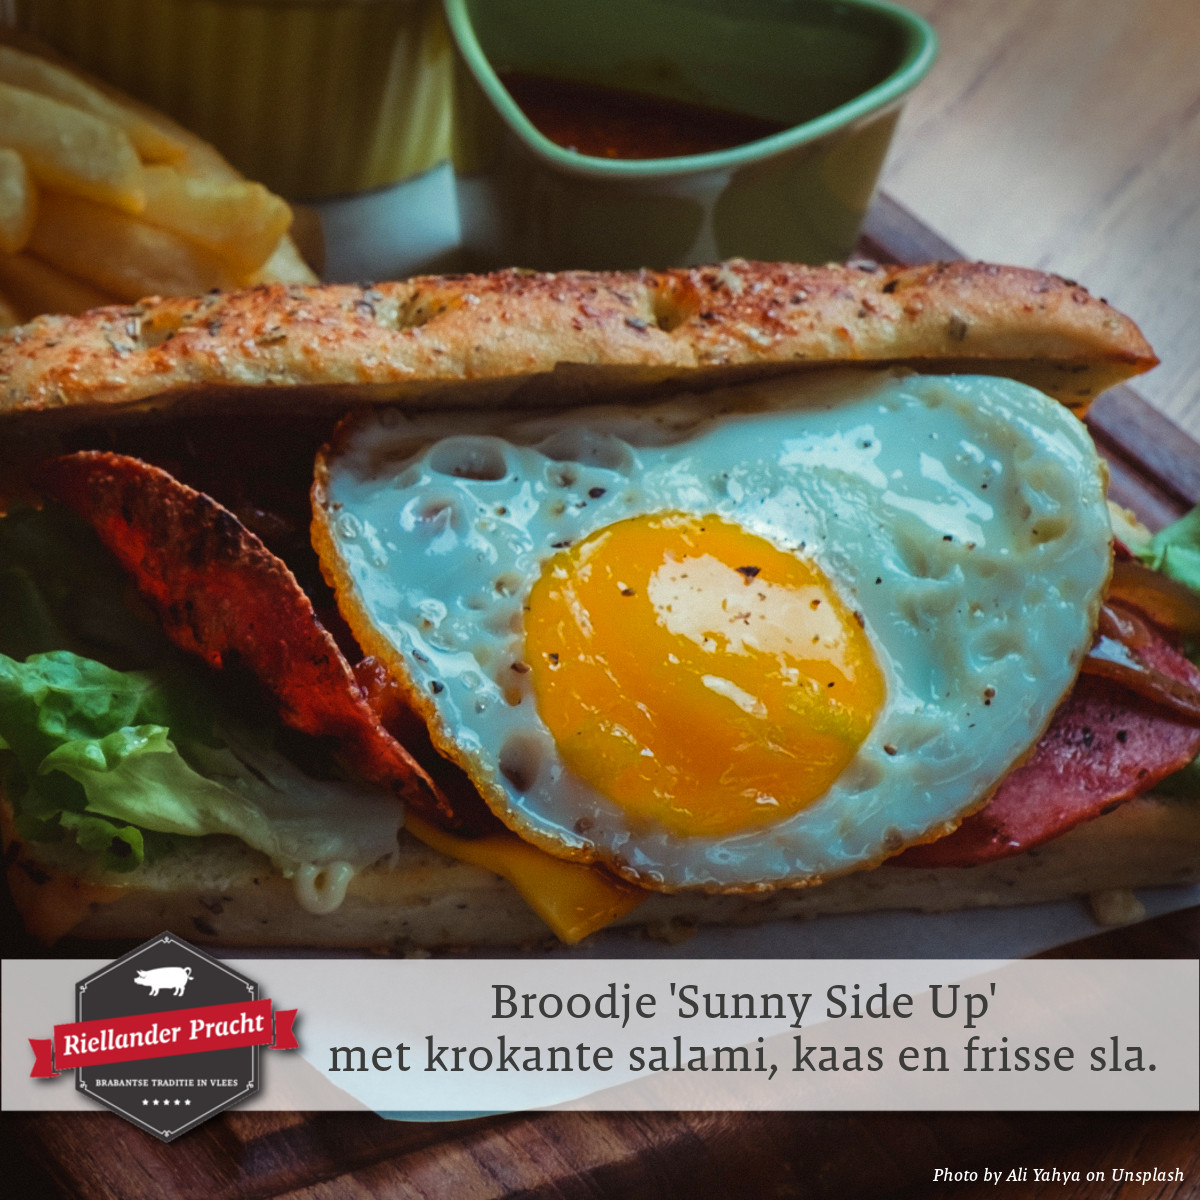 Lunch recept: broodje 'Sunny Side Up' met krokante salami, kaas en frisse sla